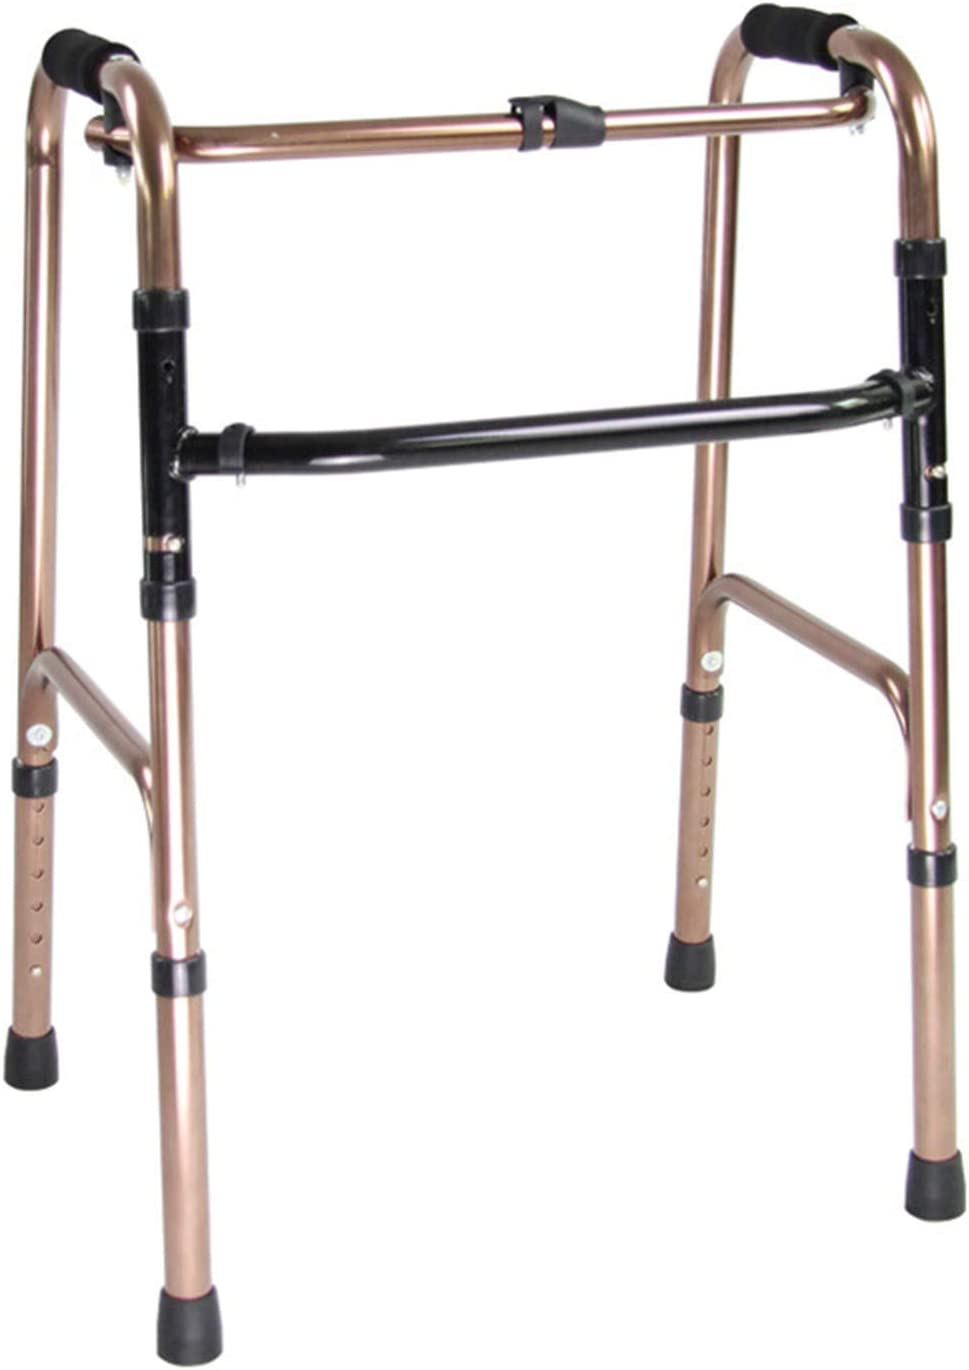 Popular products erfgh Lightweight cheap Foldable Crutches Four-Foot Walking